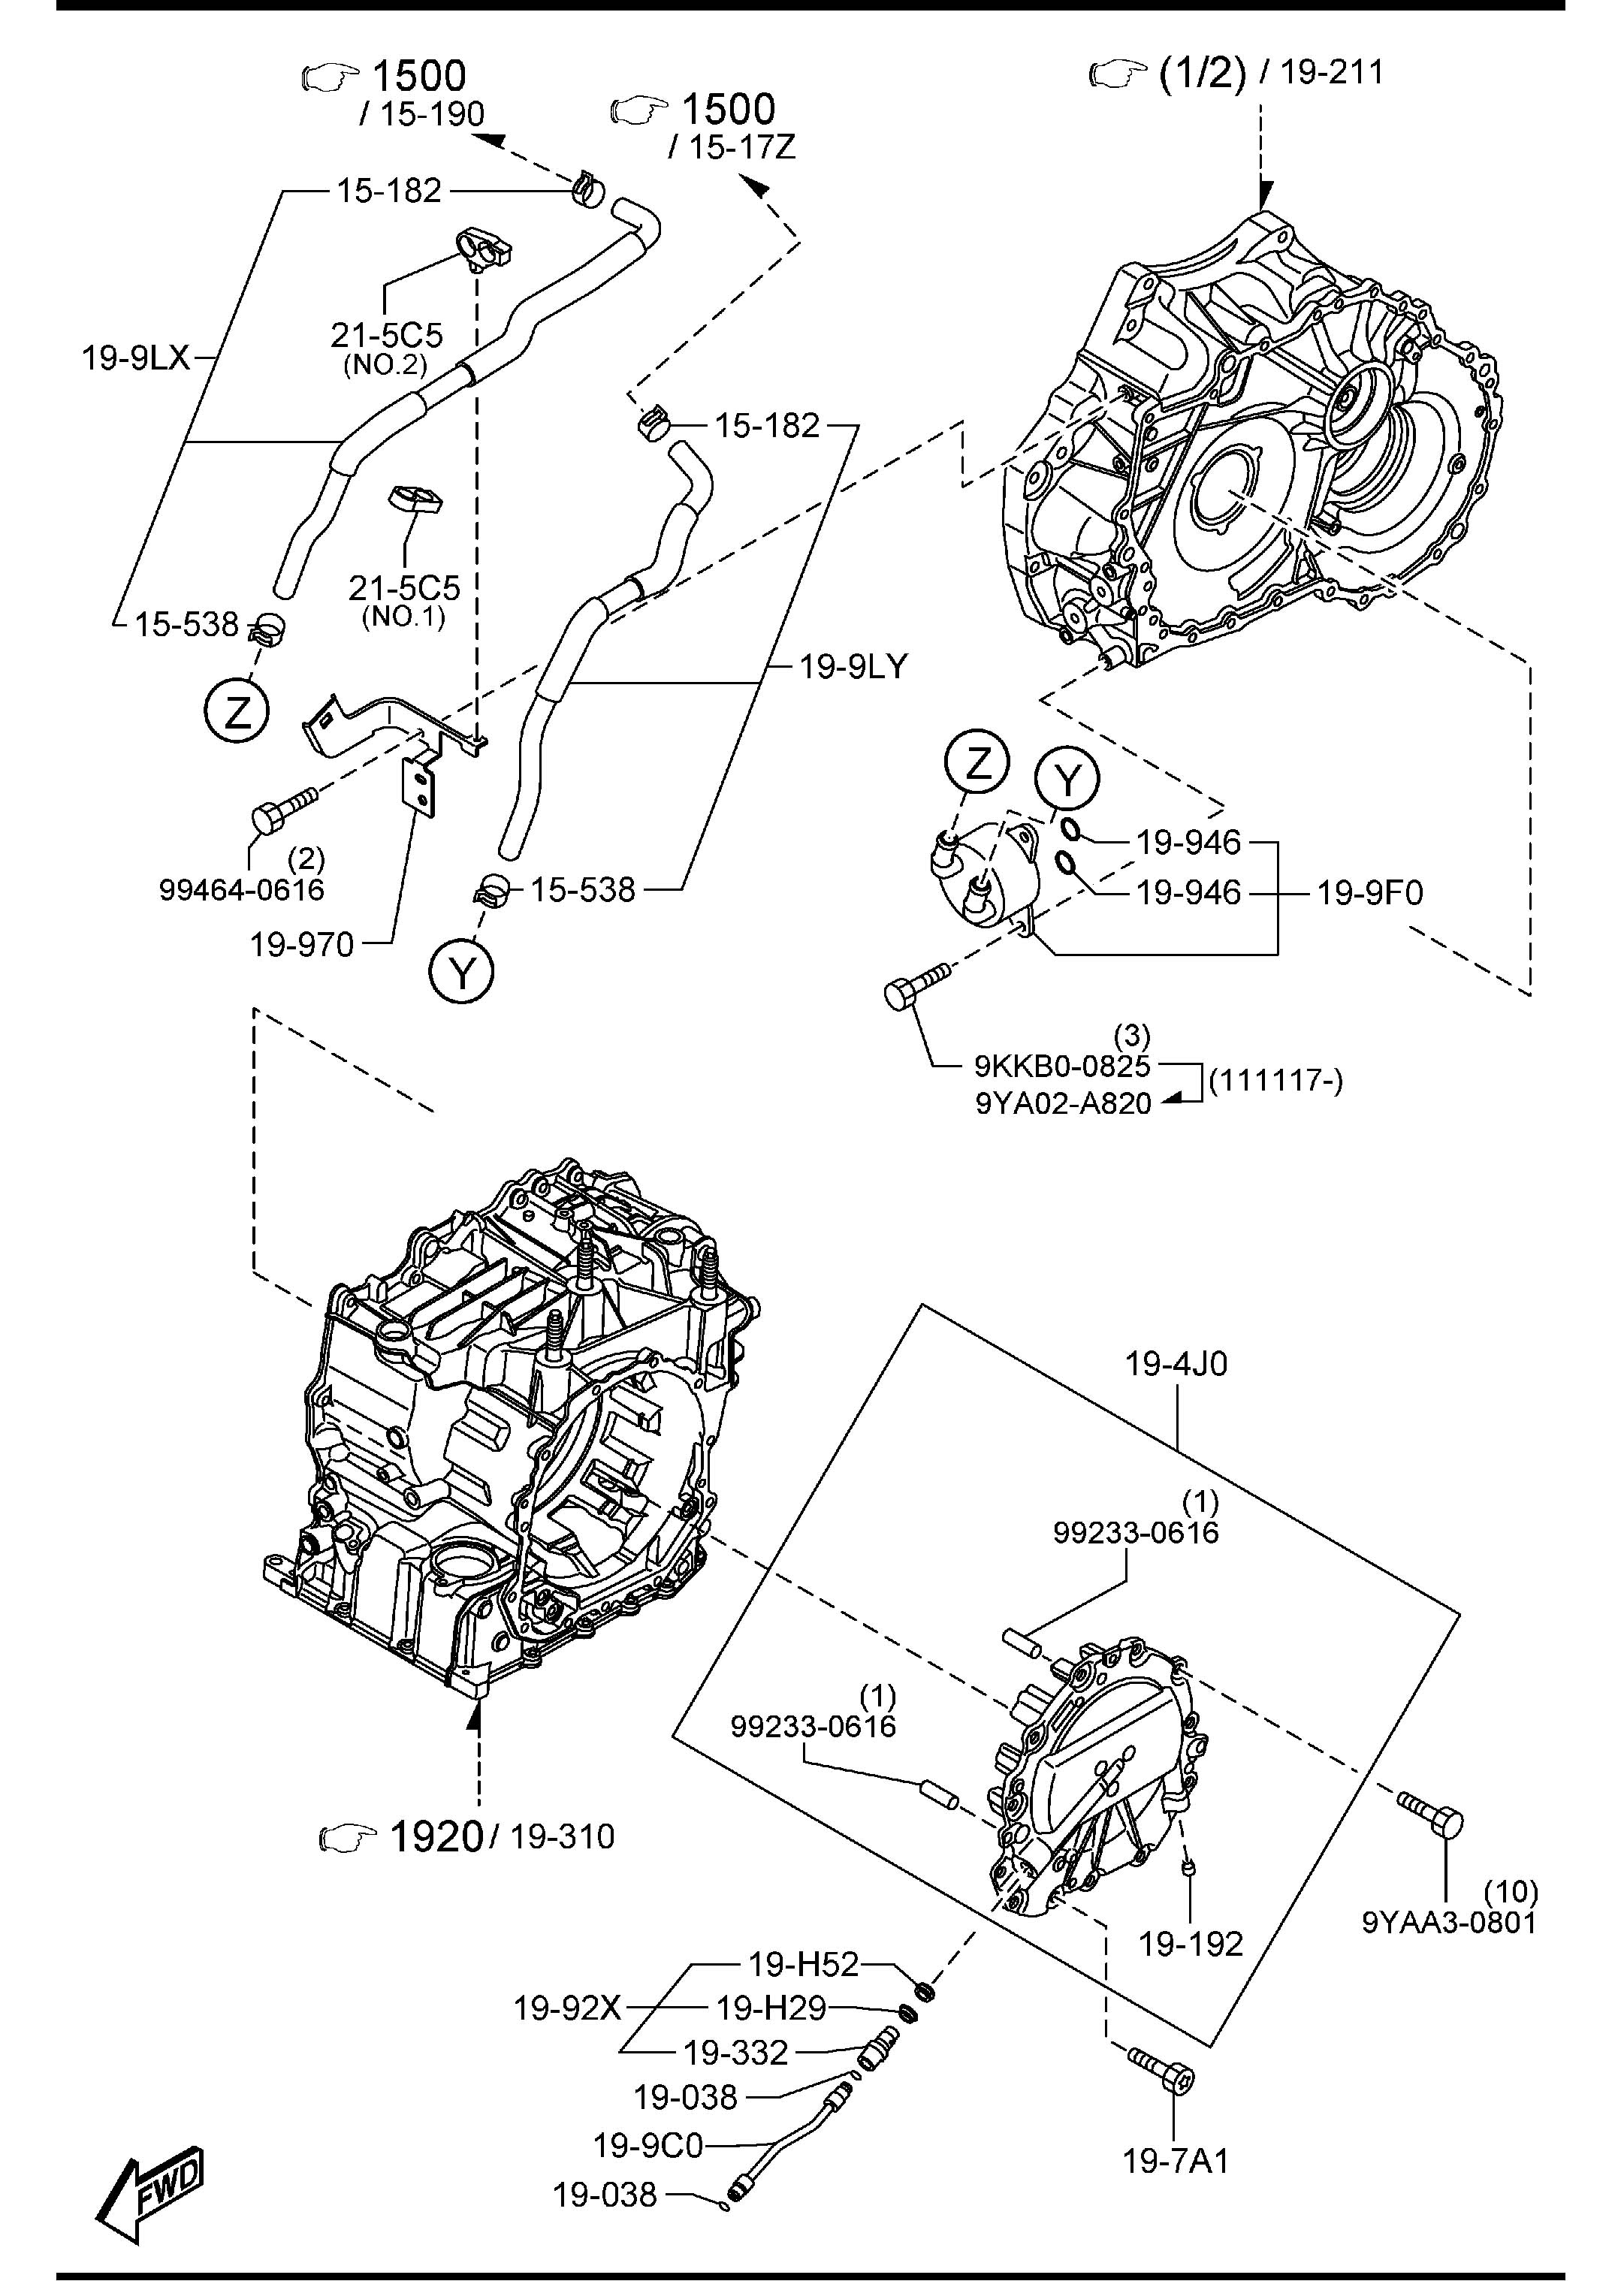 Mazda 626 4cyl Engine Diagram. Mazda. Auto Wiring Diagram